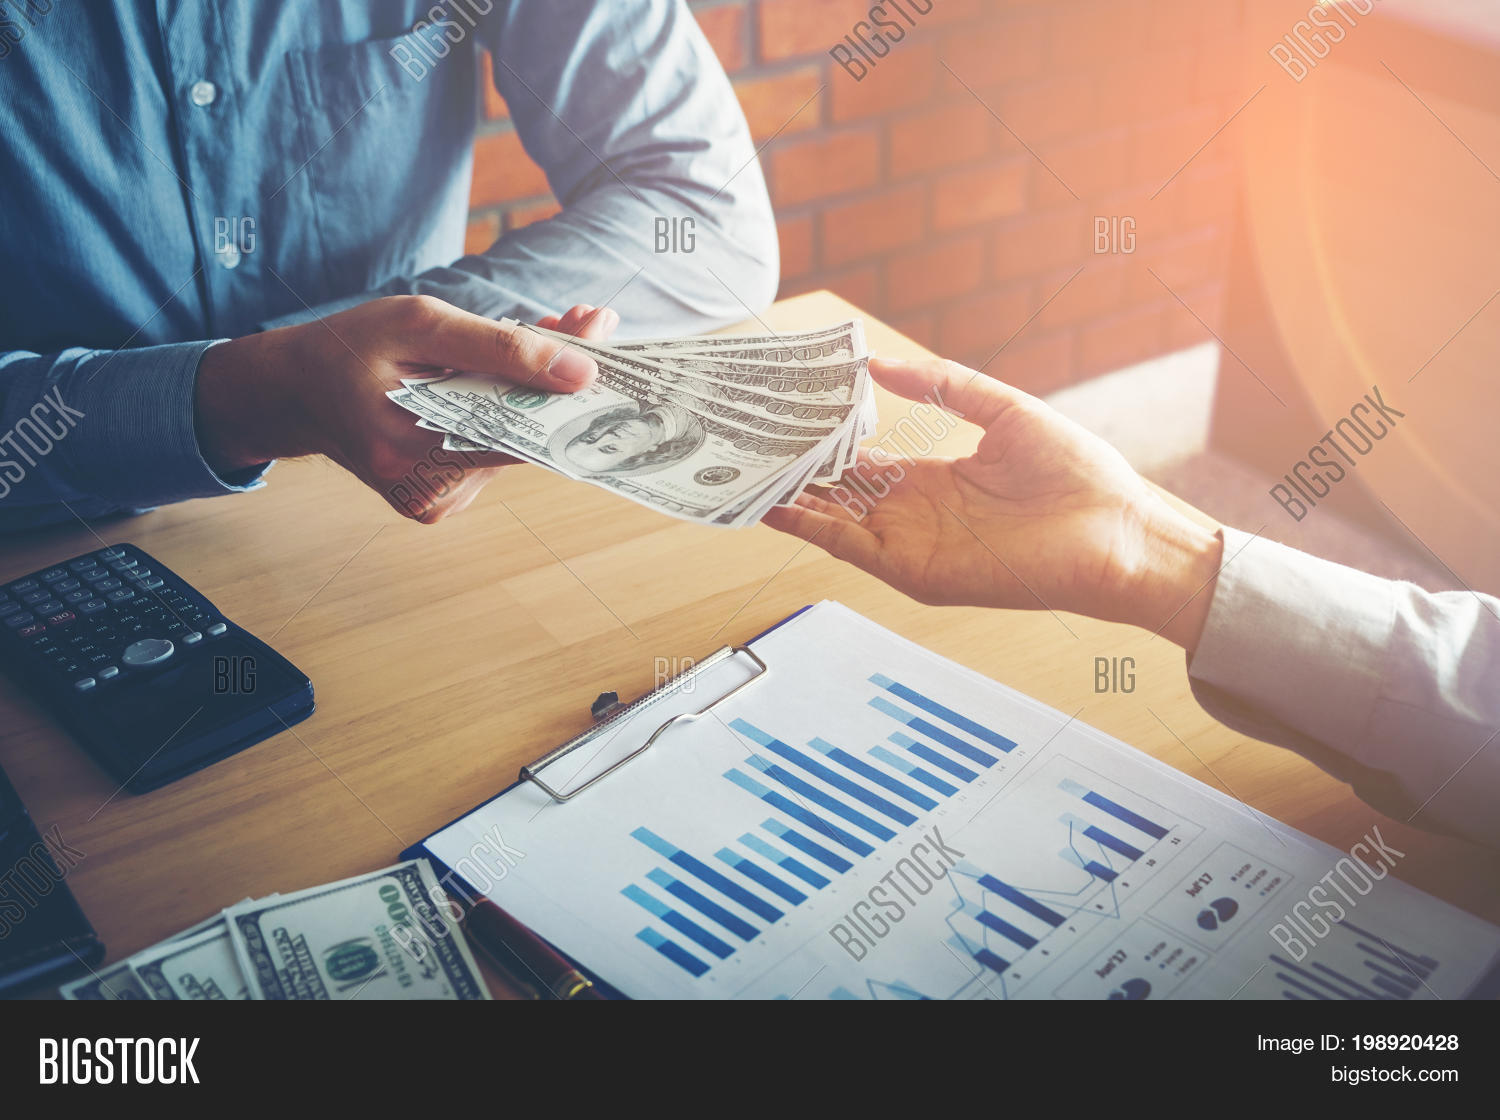 Hand Giving Money Image & Photo (Free Trial) | Bigstock